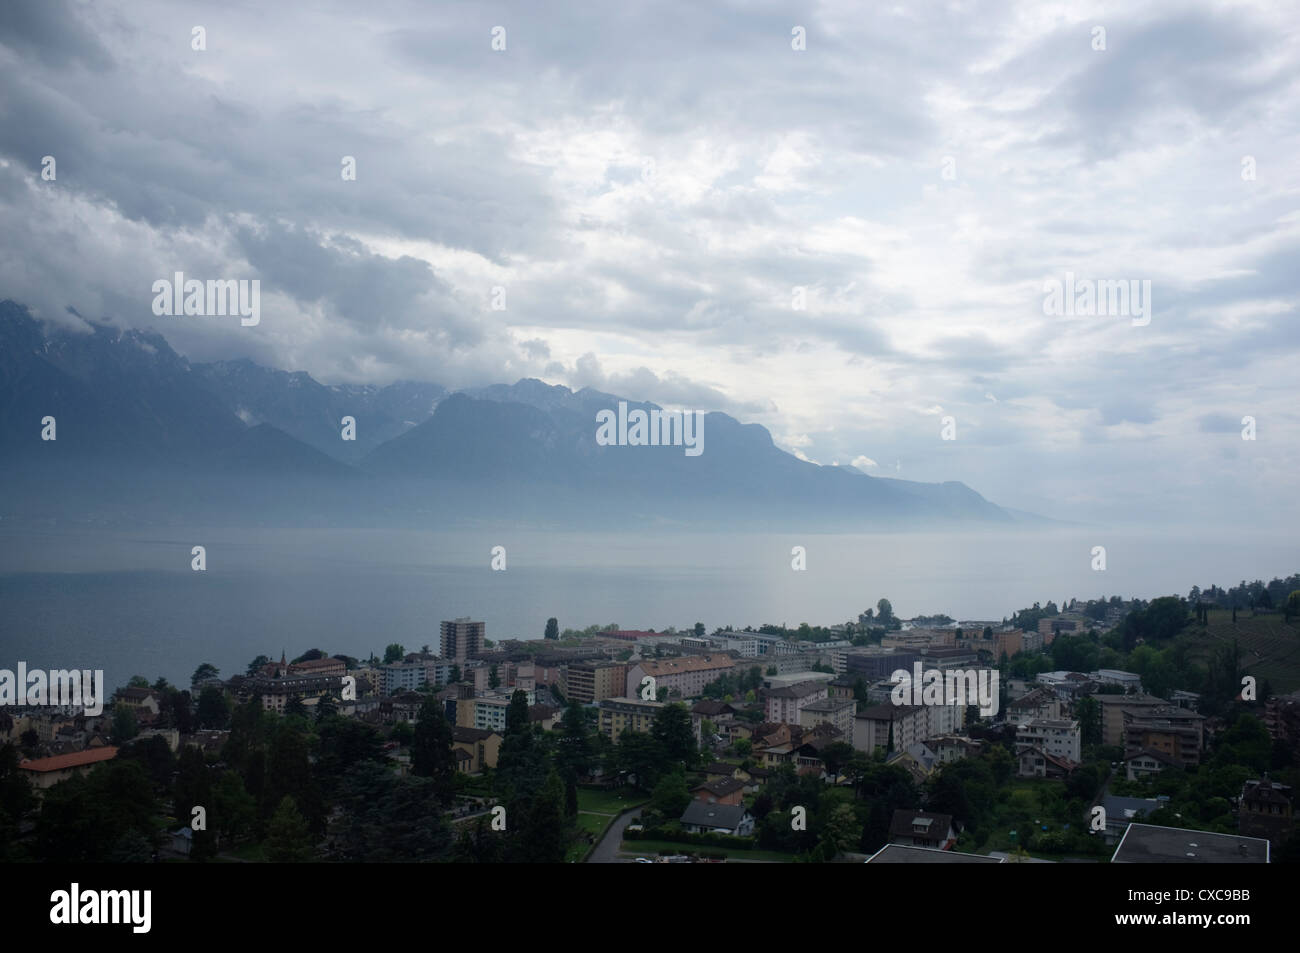 Lake Geneva or Lake Leman is one of the largest lakes in Western Europe -1 Stock Photo